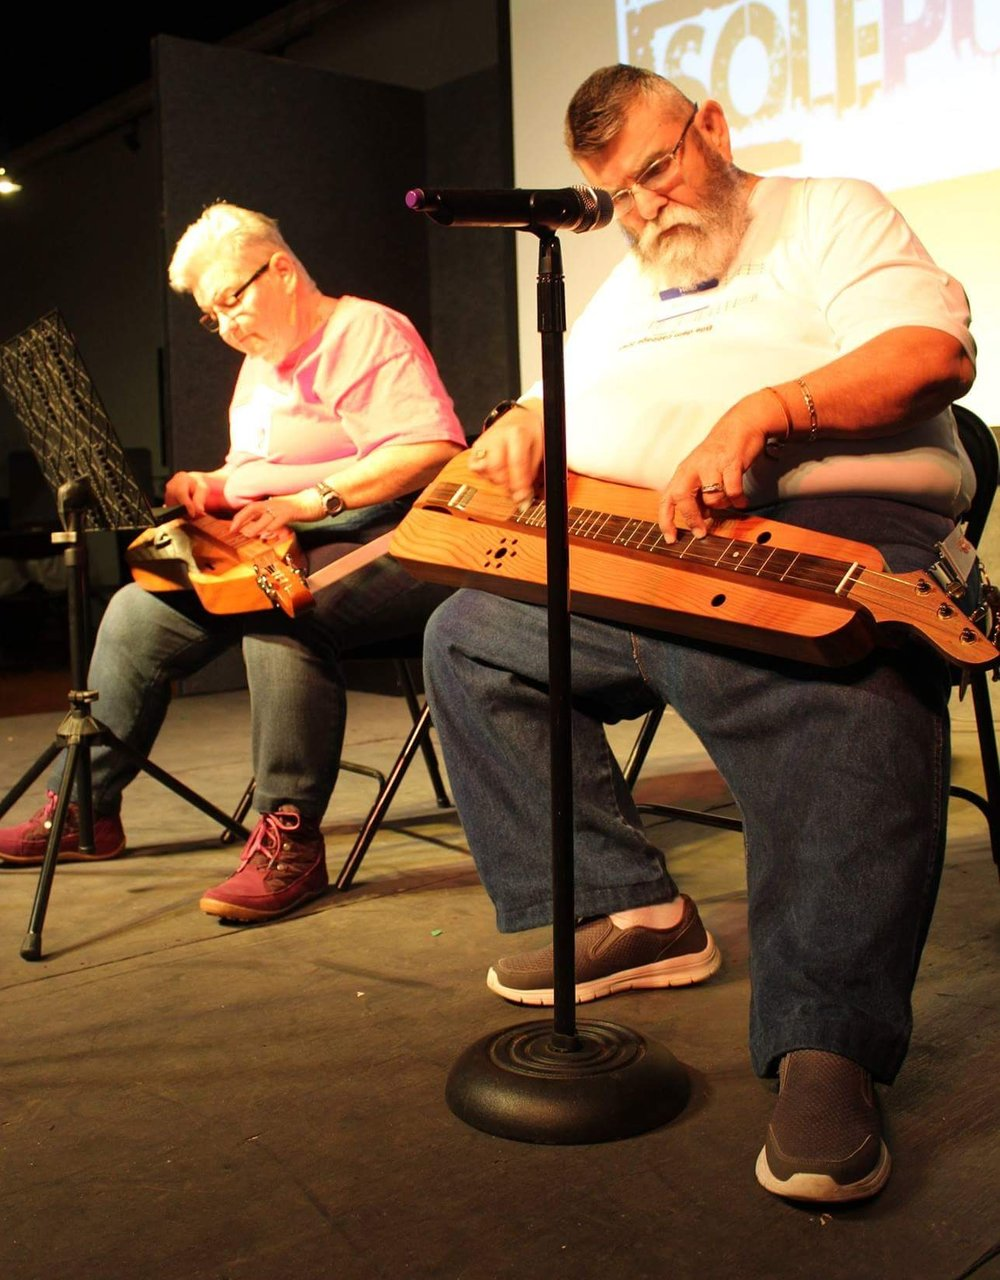 Dennis and Ellen Waldrop, Celebration Dulcimers performing on stage at the annual Sole Purpose event.